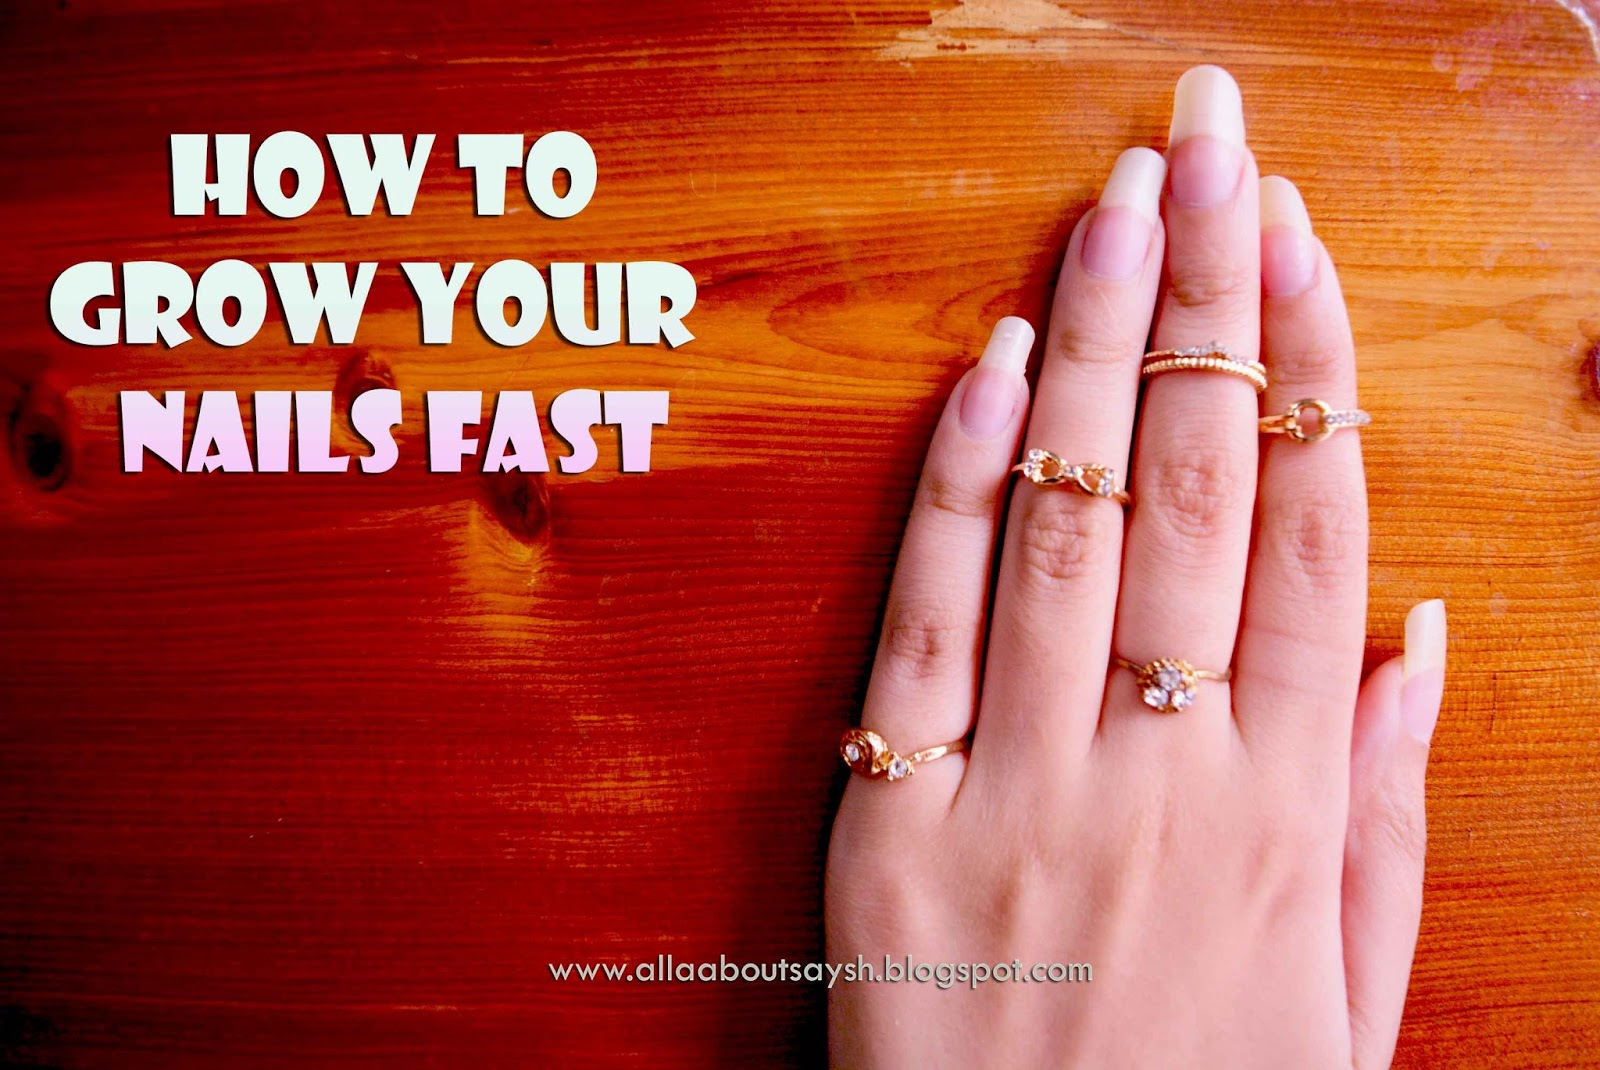 how to grow nails fast in 1 hour